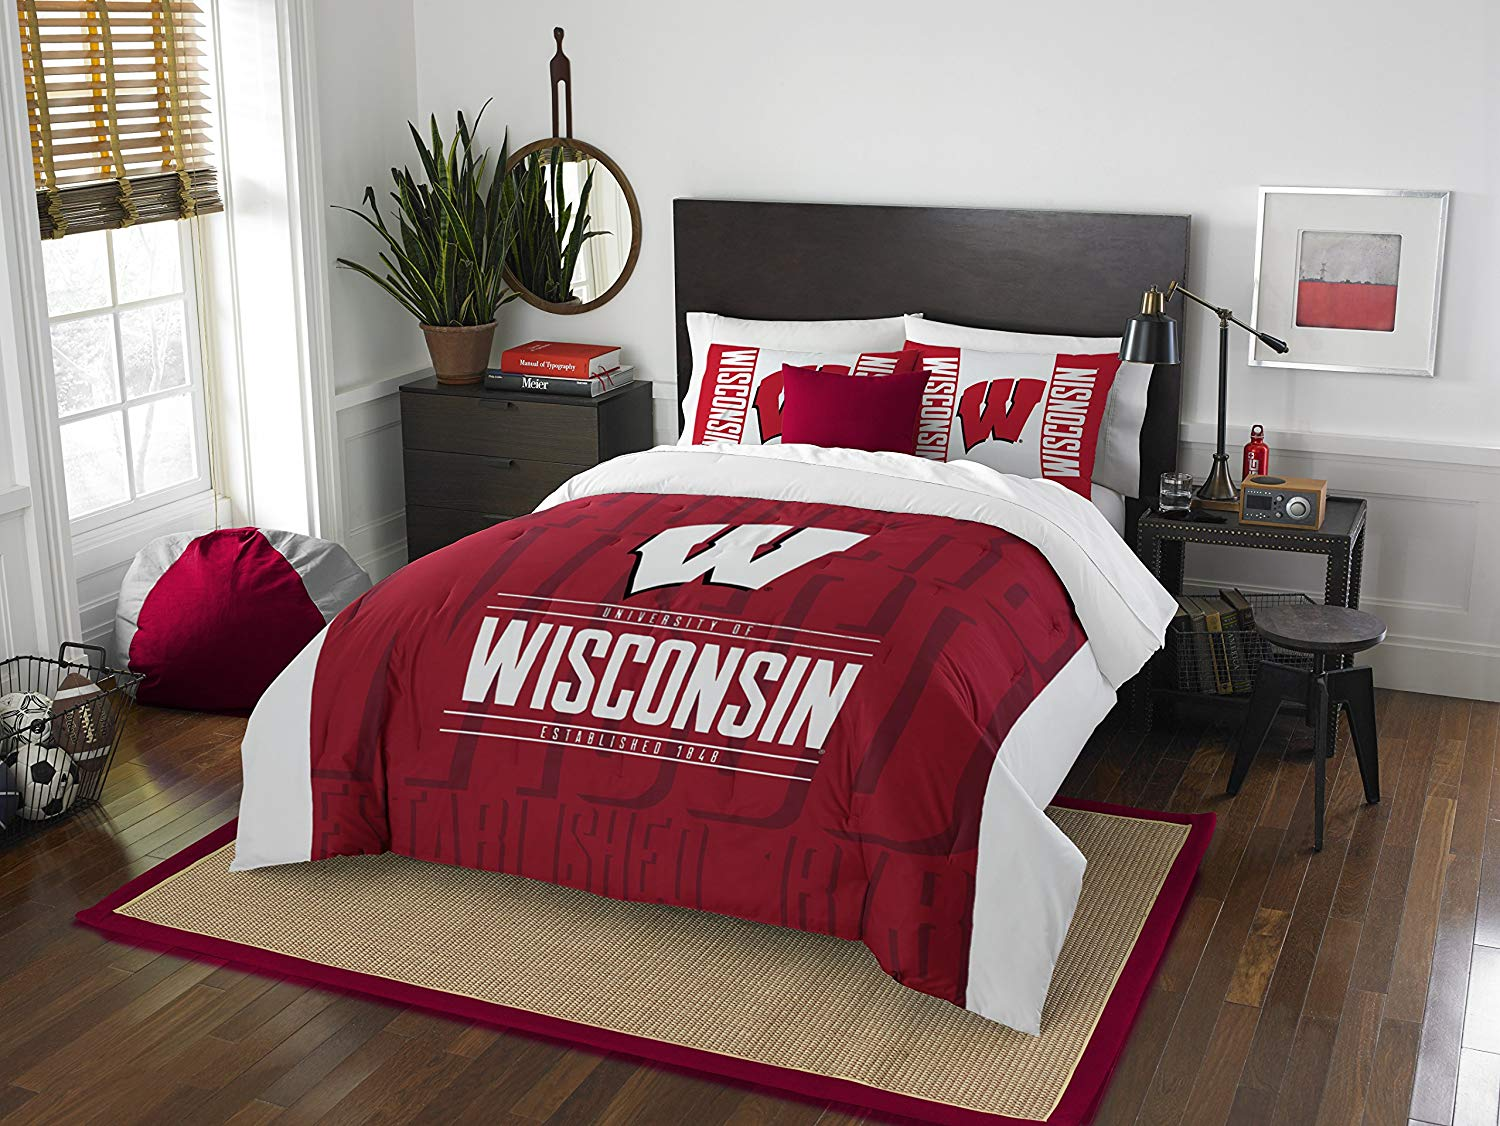 Wisconsin Badgers 7 Piece FULL SIZE Printed Comforter Bedding Set & w/ NEW Team Anthem Colored Sheets - Includes: (1 Full Size Comforter, 1 Flat Sheet, 1 Fitted Sheet, 2 Pillow Cases, 2 Pillow Shams)